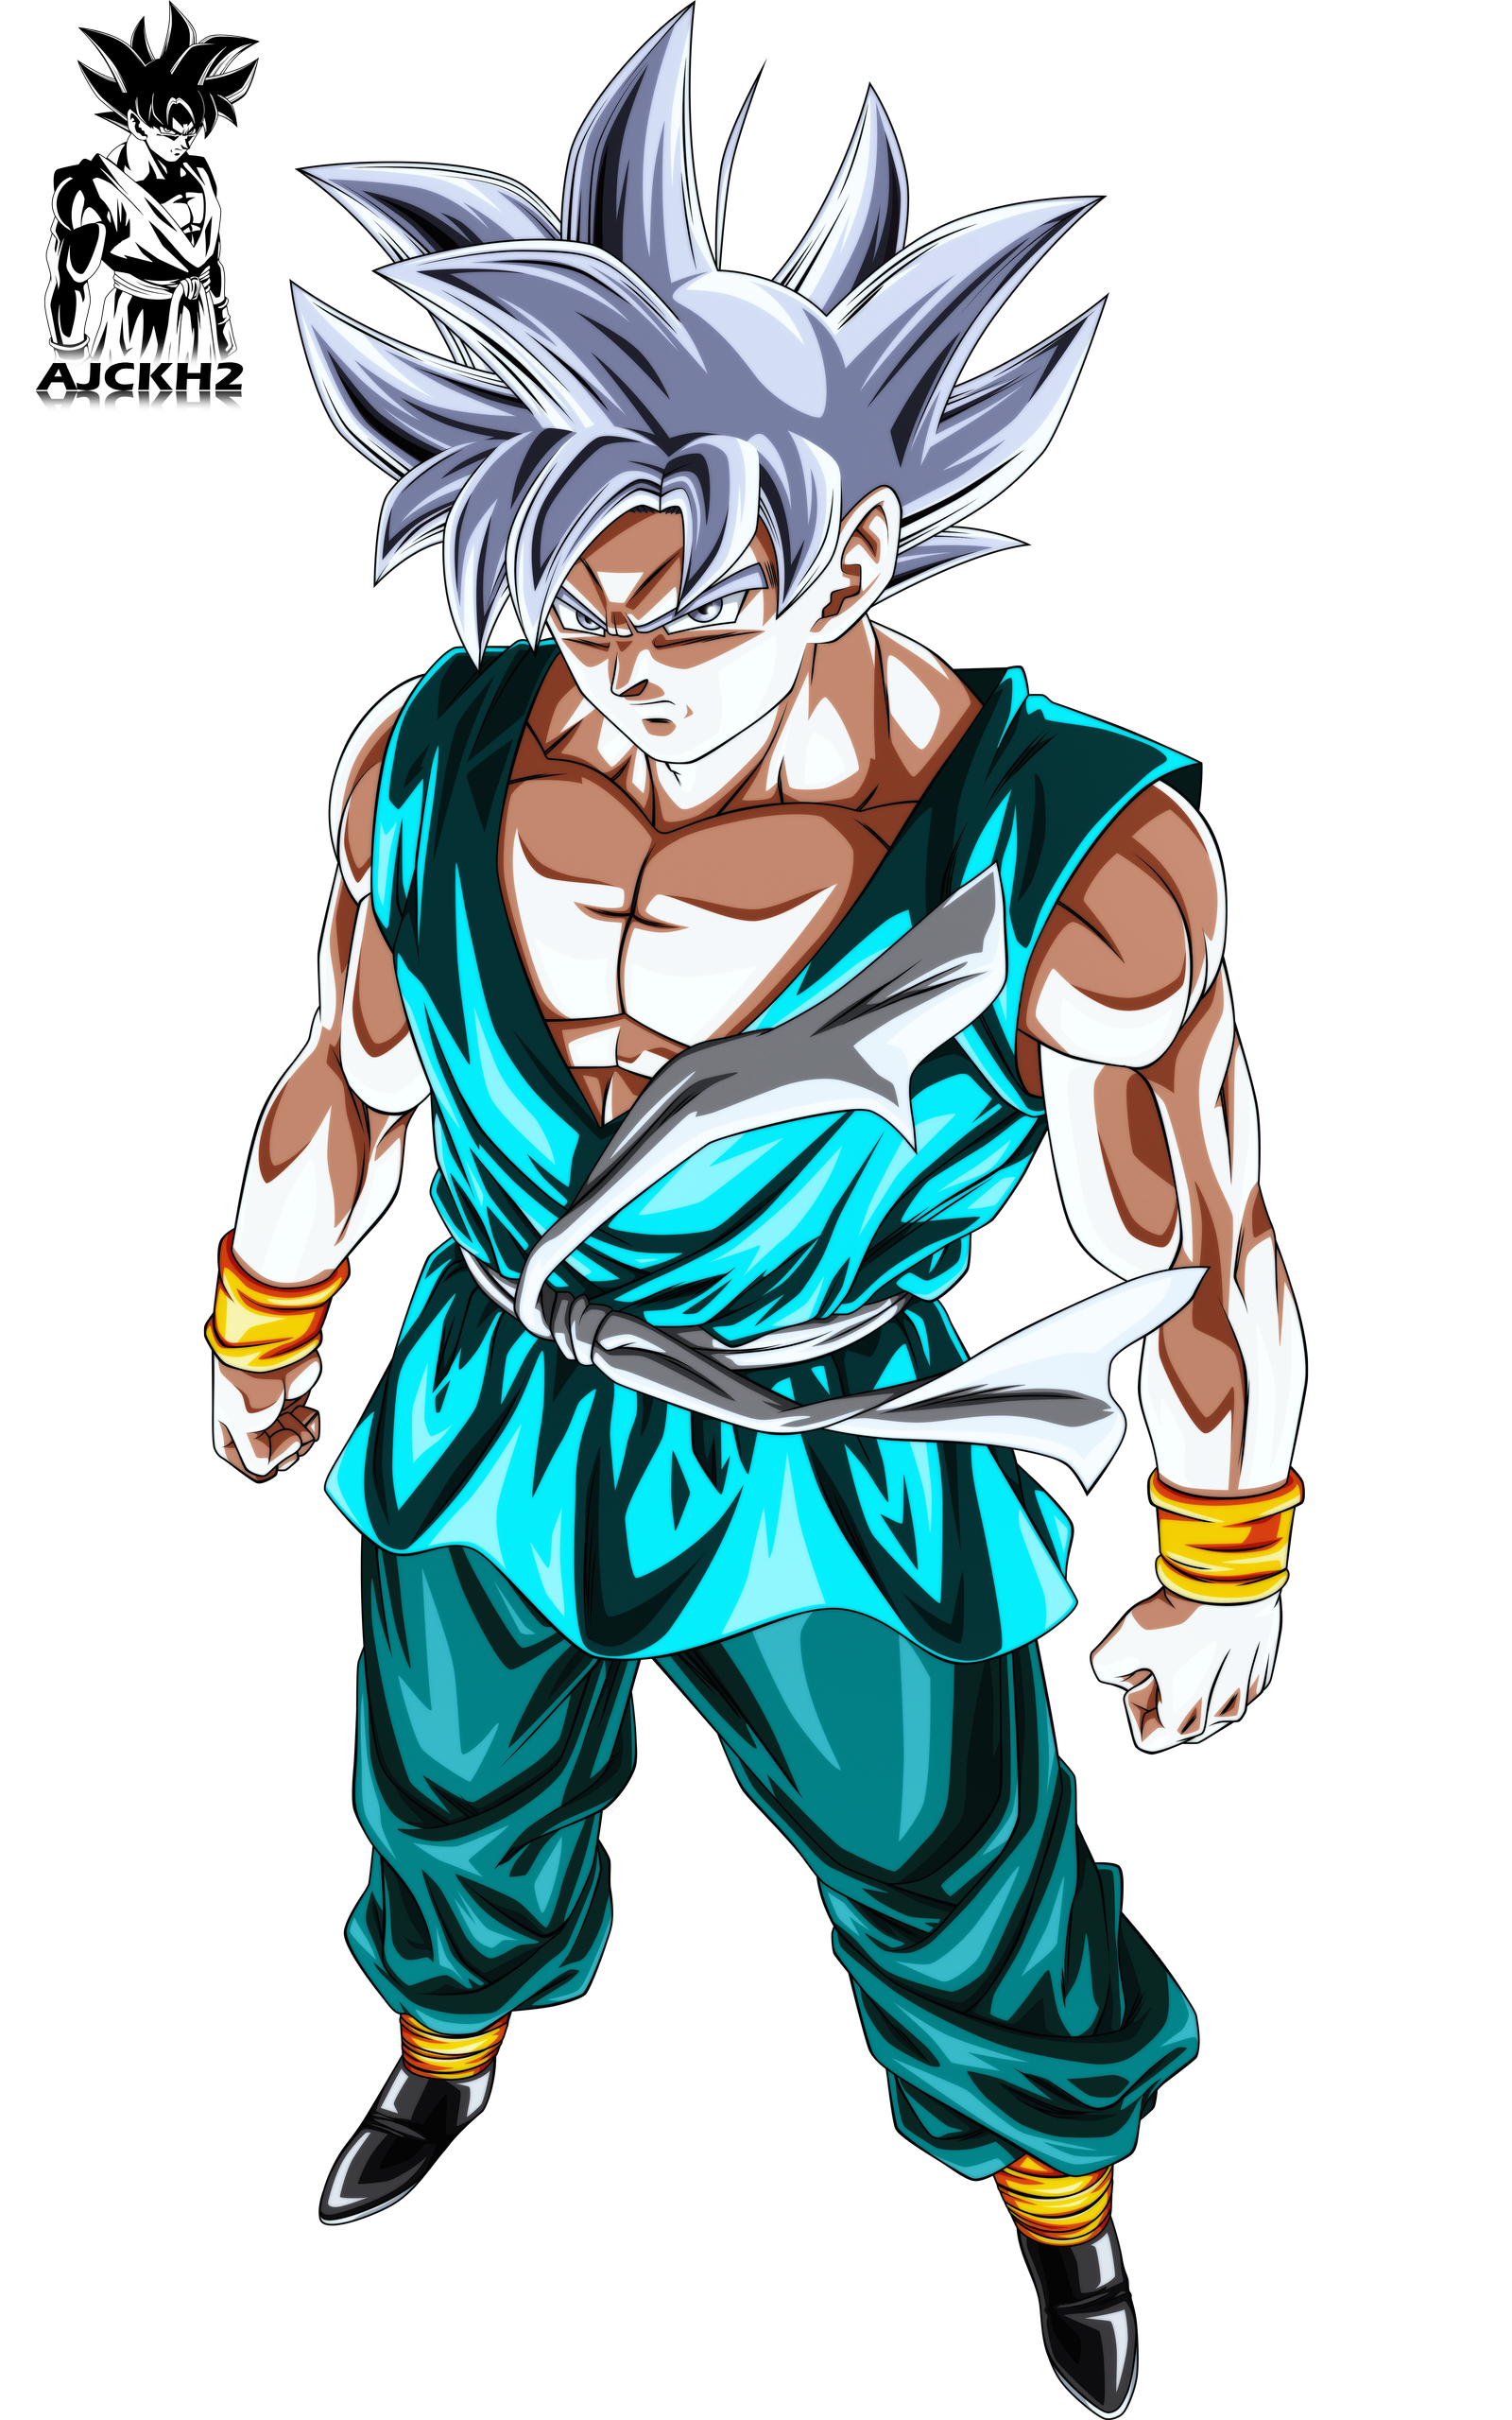 ultra instinct goku png posted by samantha peltier ultra instinct goku png posted by